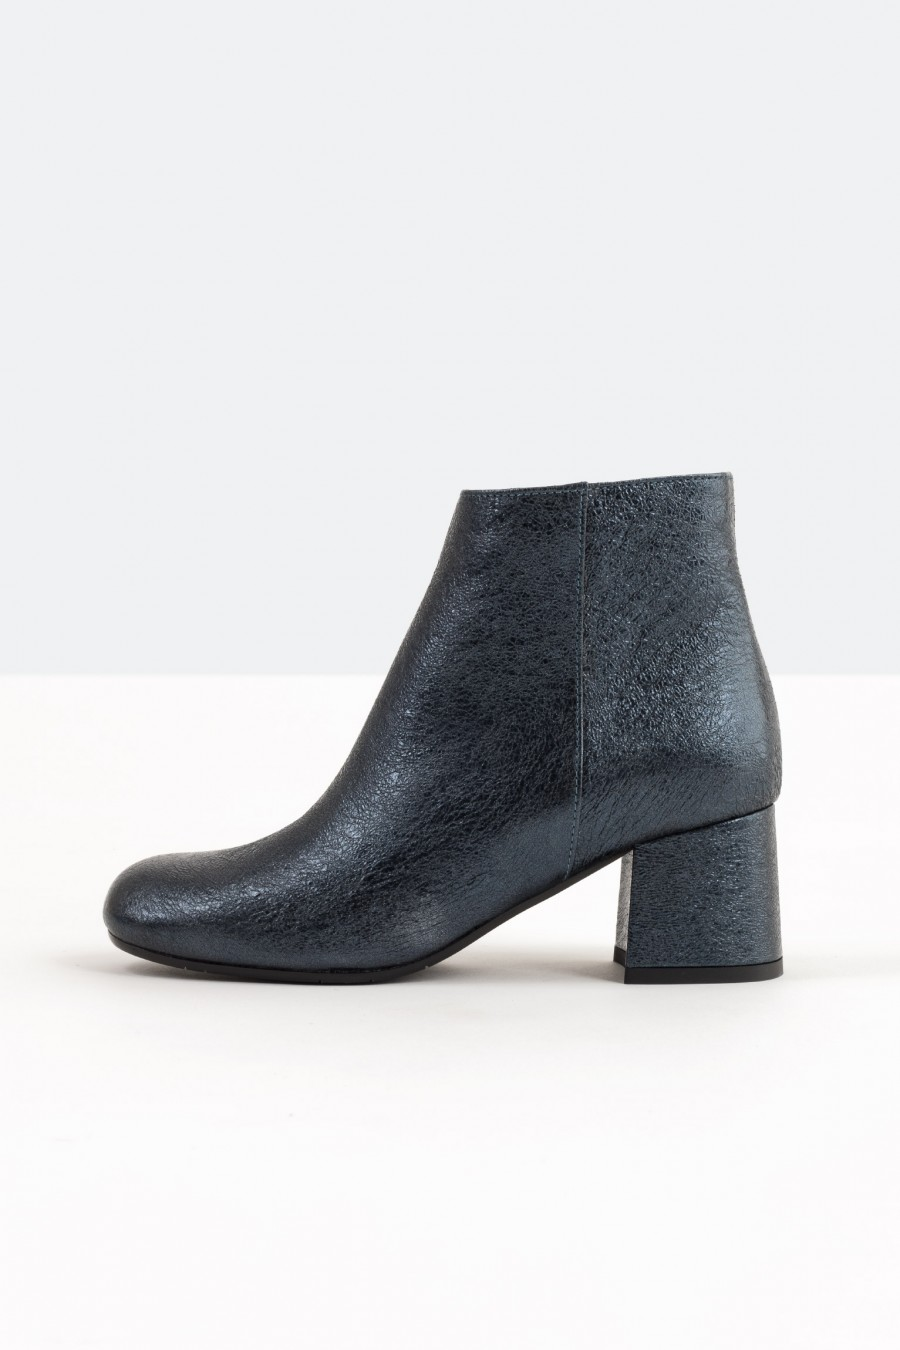 Blue metallic leather ankle boots